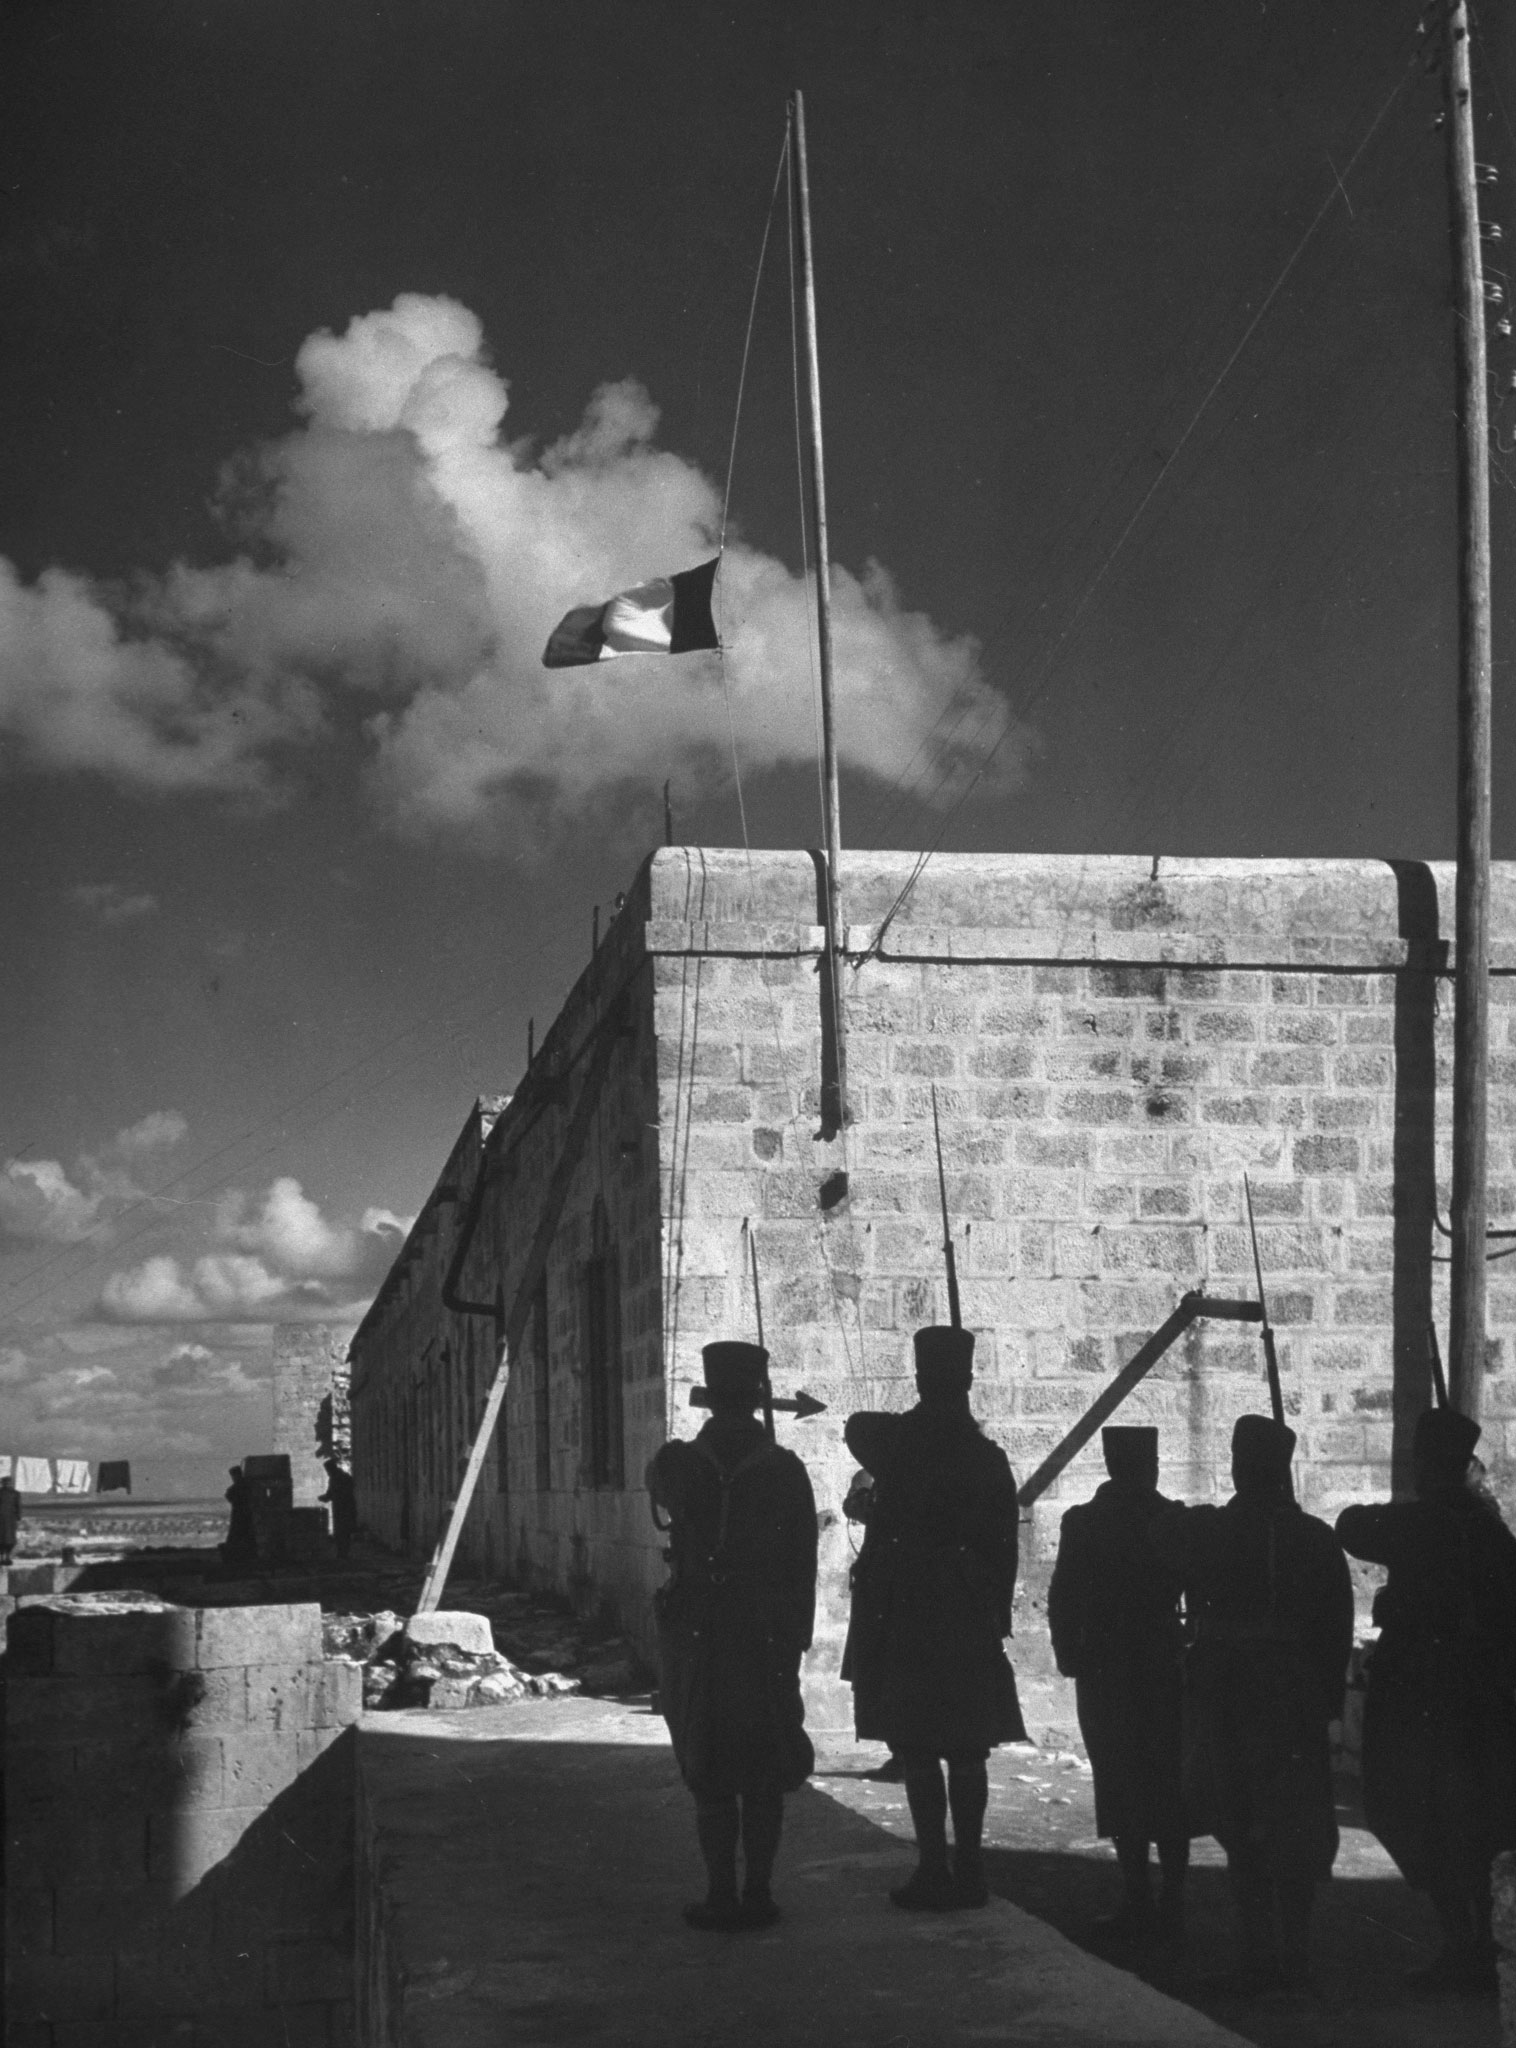 Raising the French flag at Aleppo, Syria, 1940.